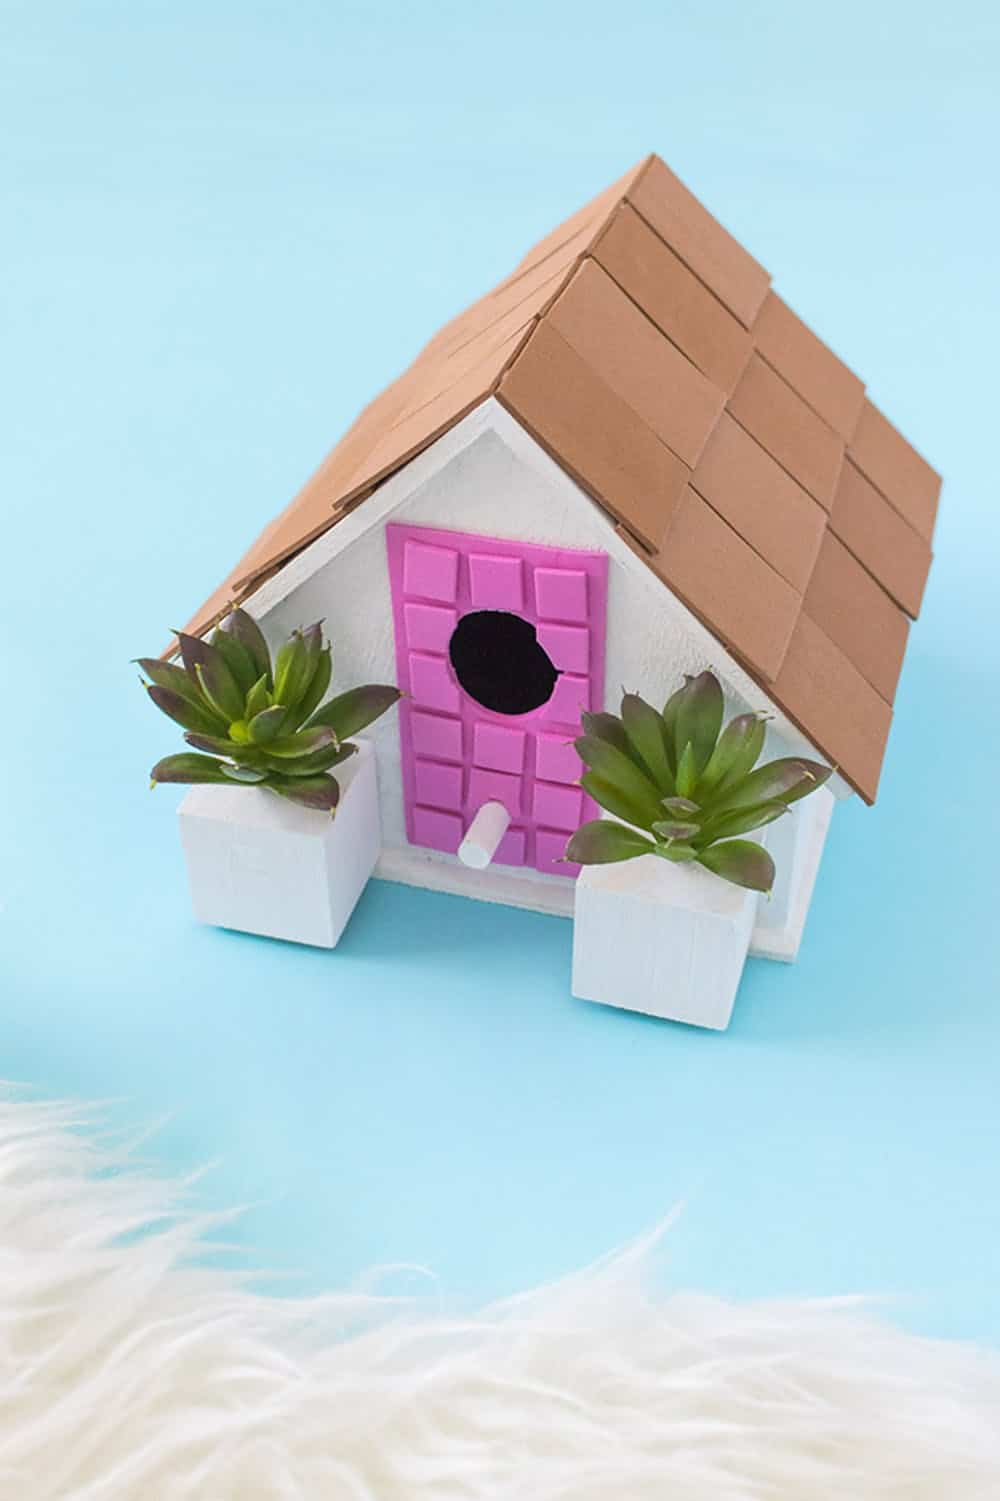 Diy palm springs birdhouse